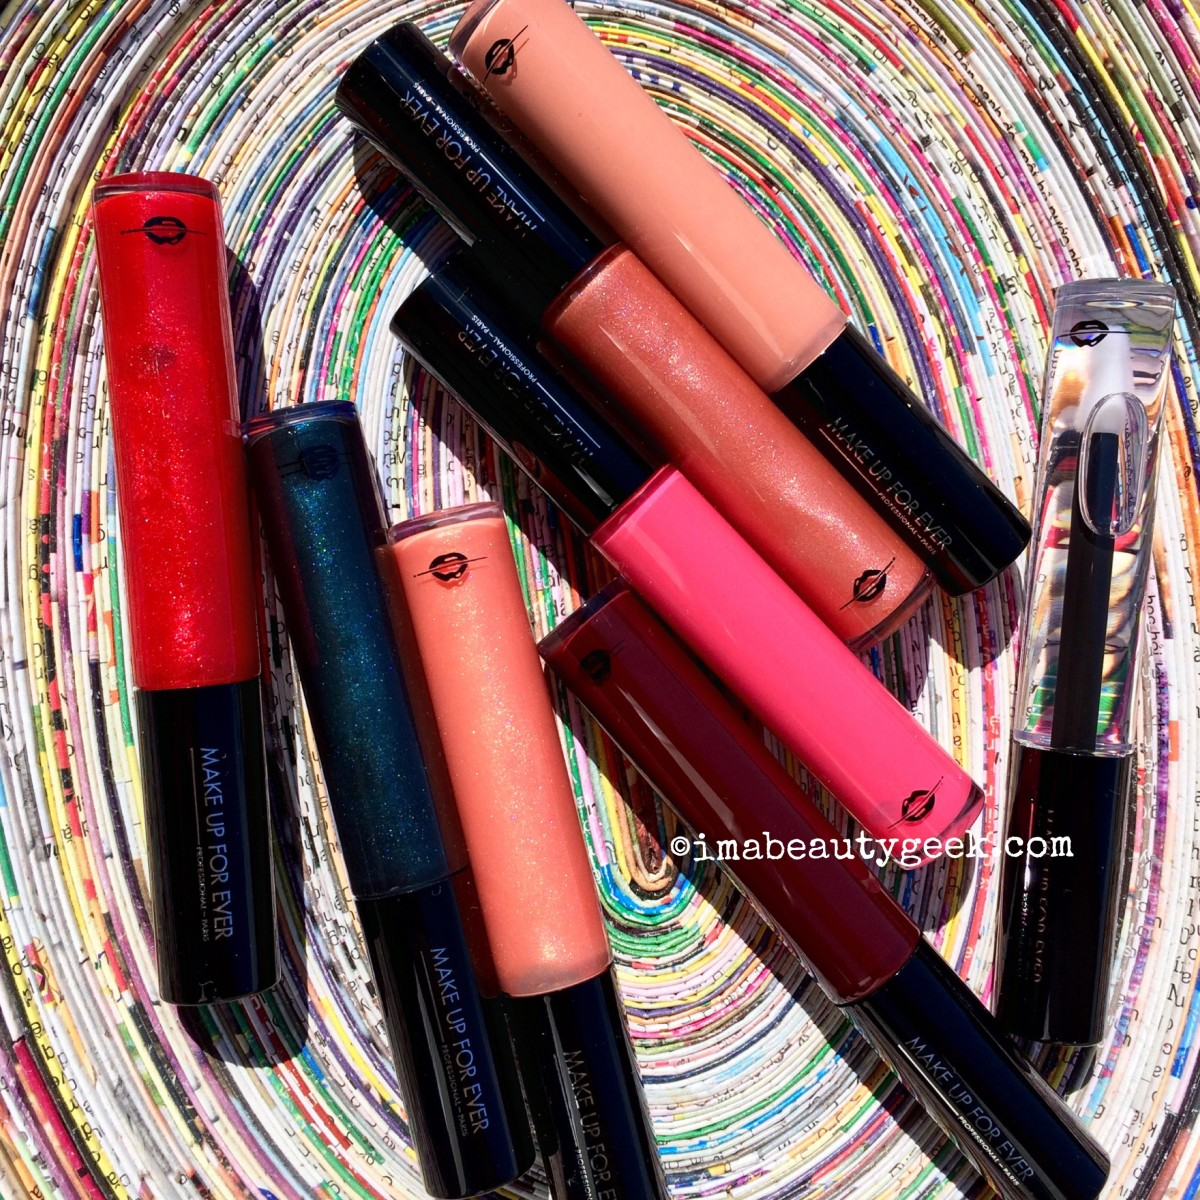 Summer lip gloss: Make Up For Ever Artist Plexi-Gloss comes in sheer and opaque finishes